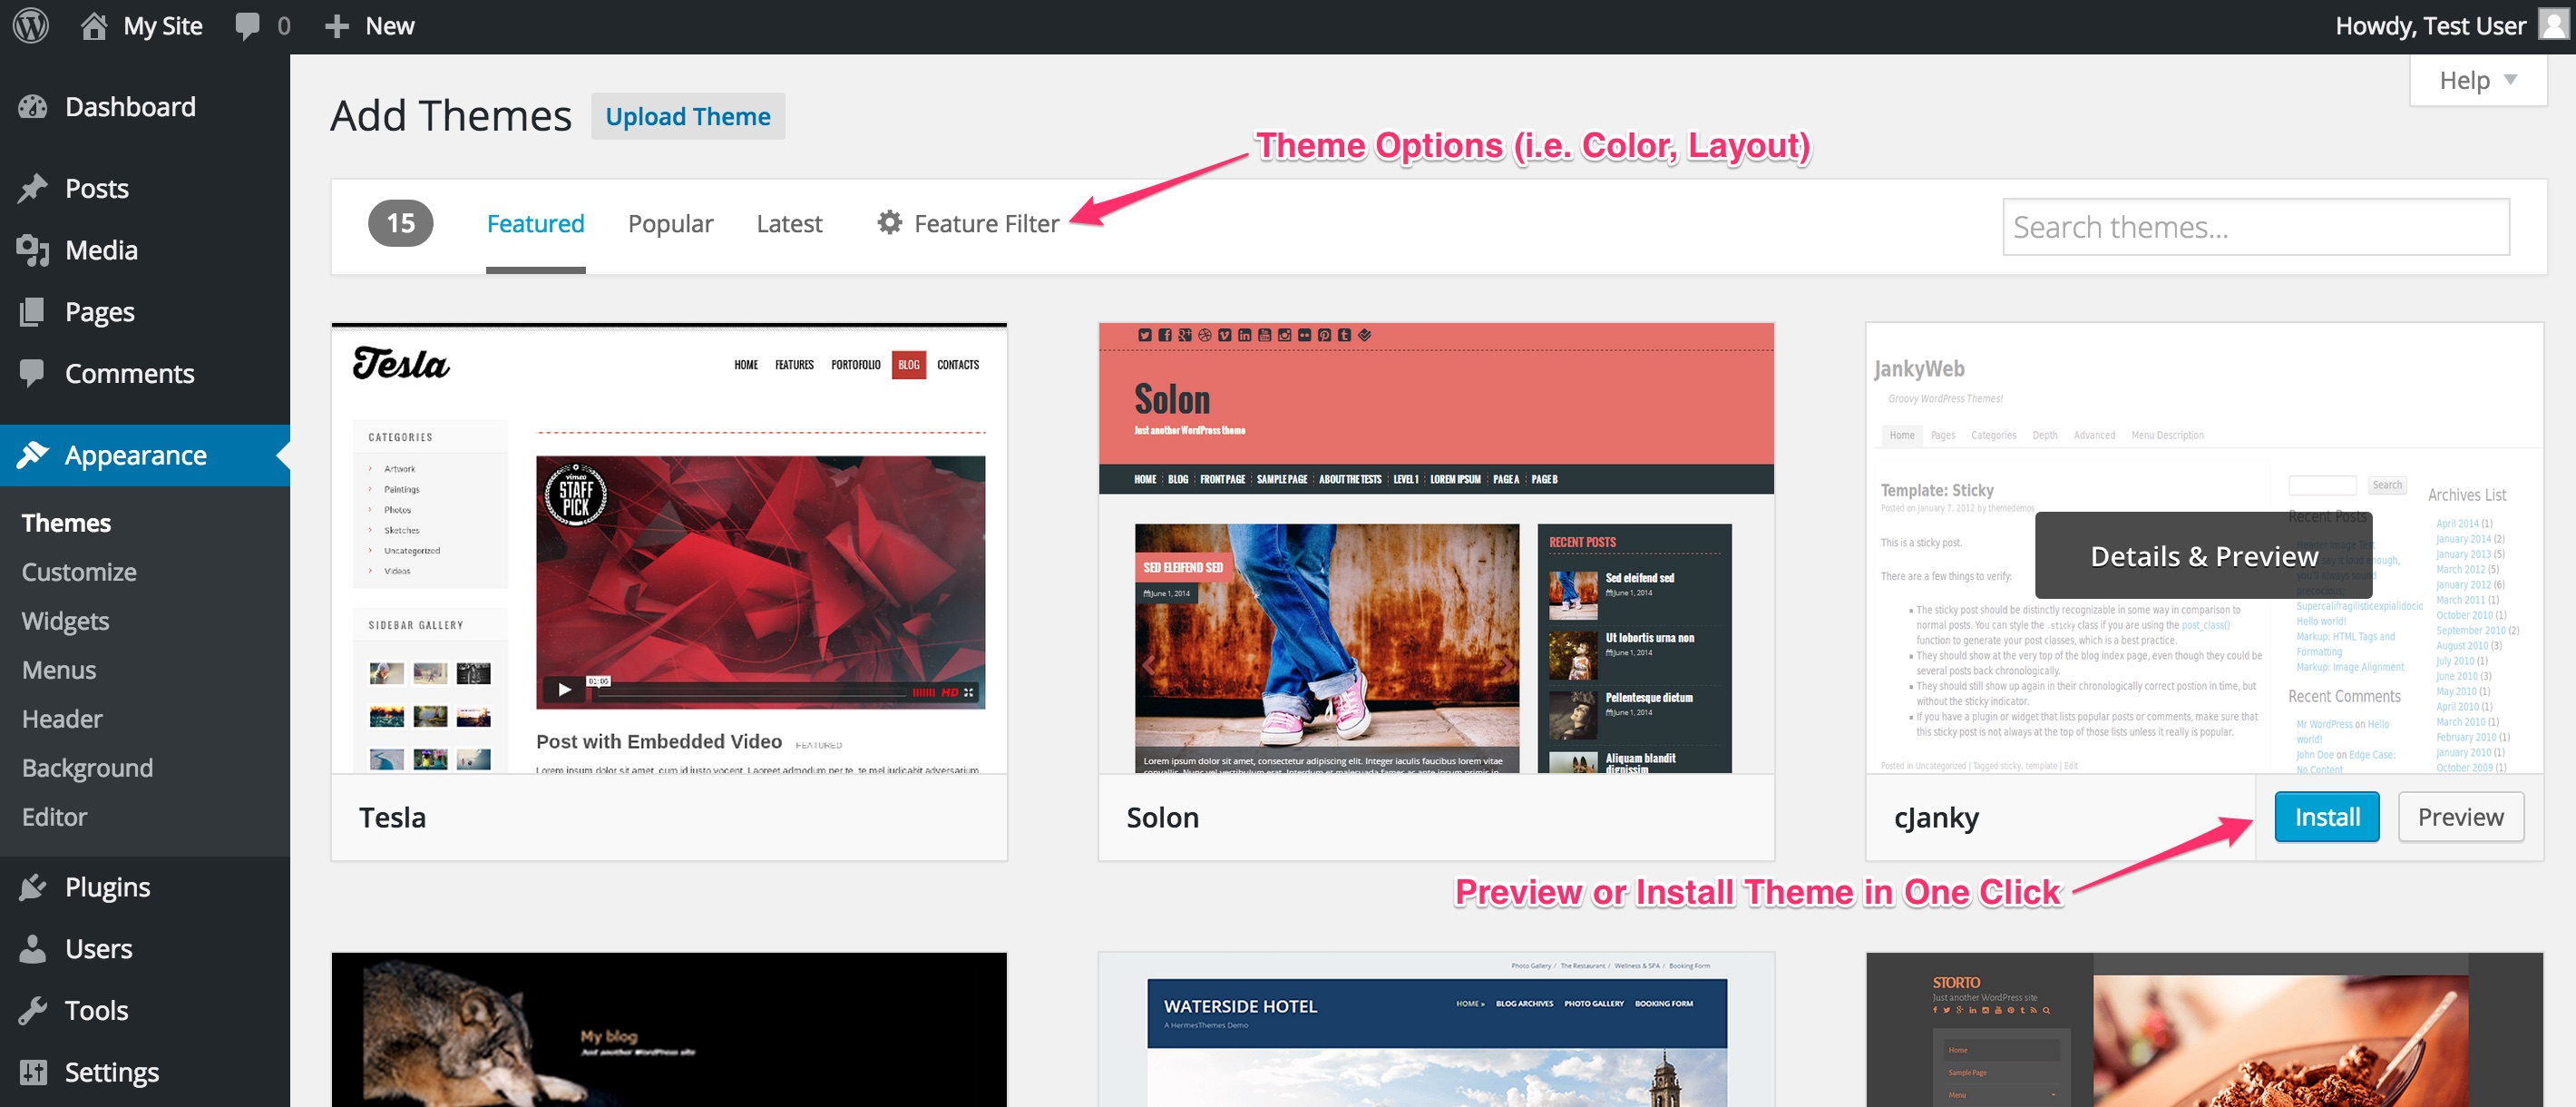 Adding a new theme in WordPress